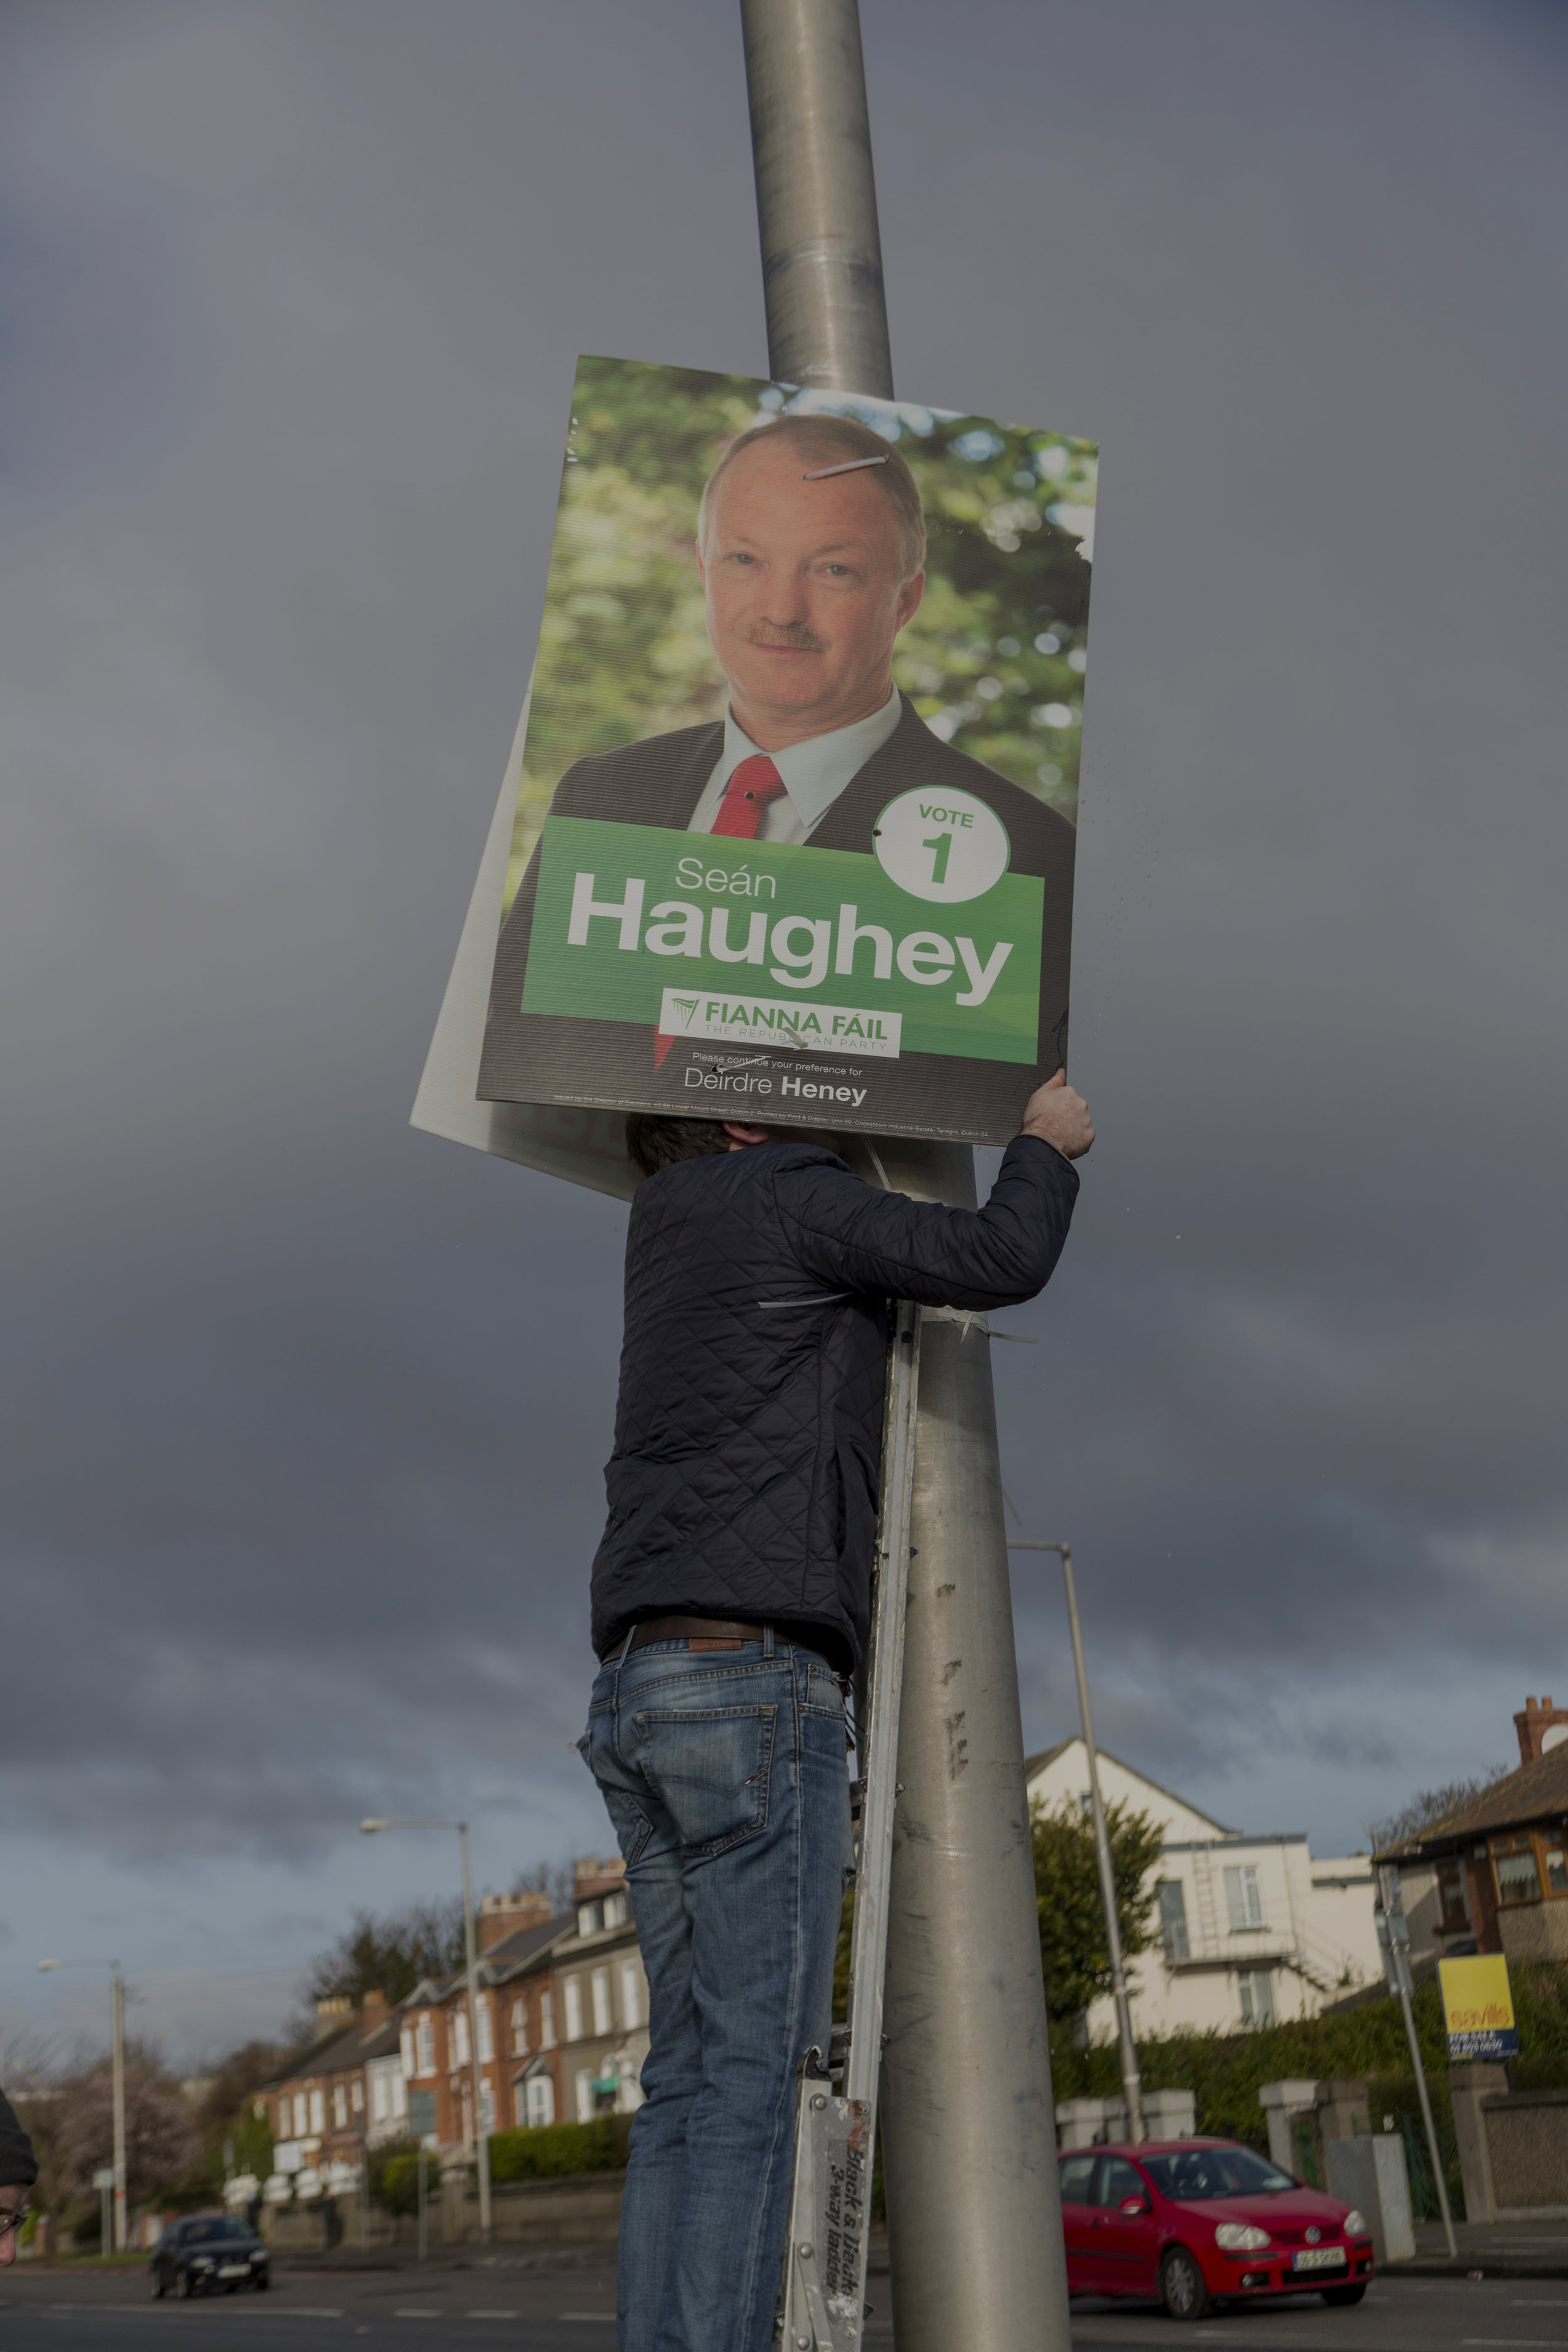 Election poster